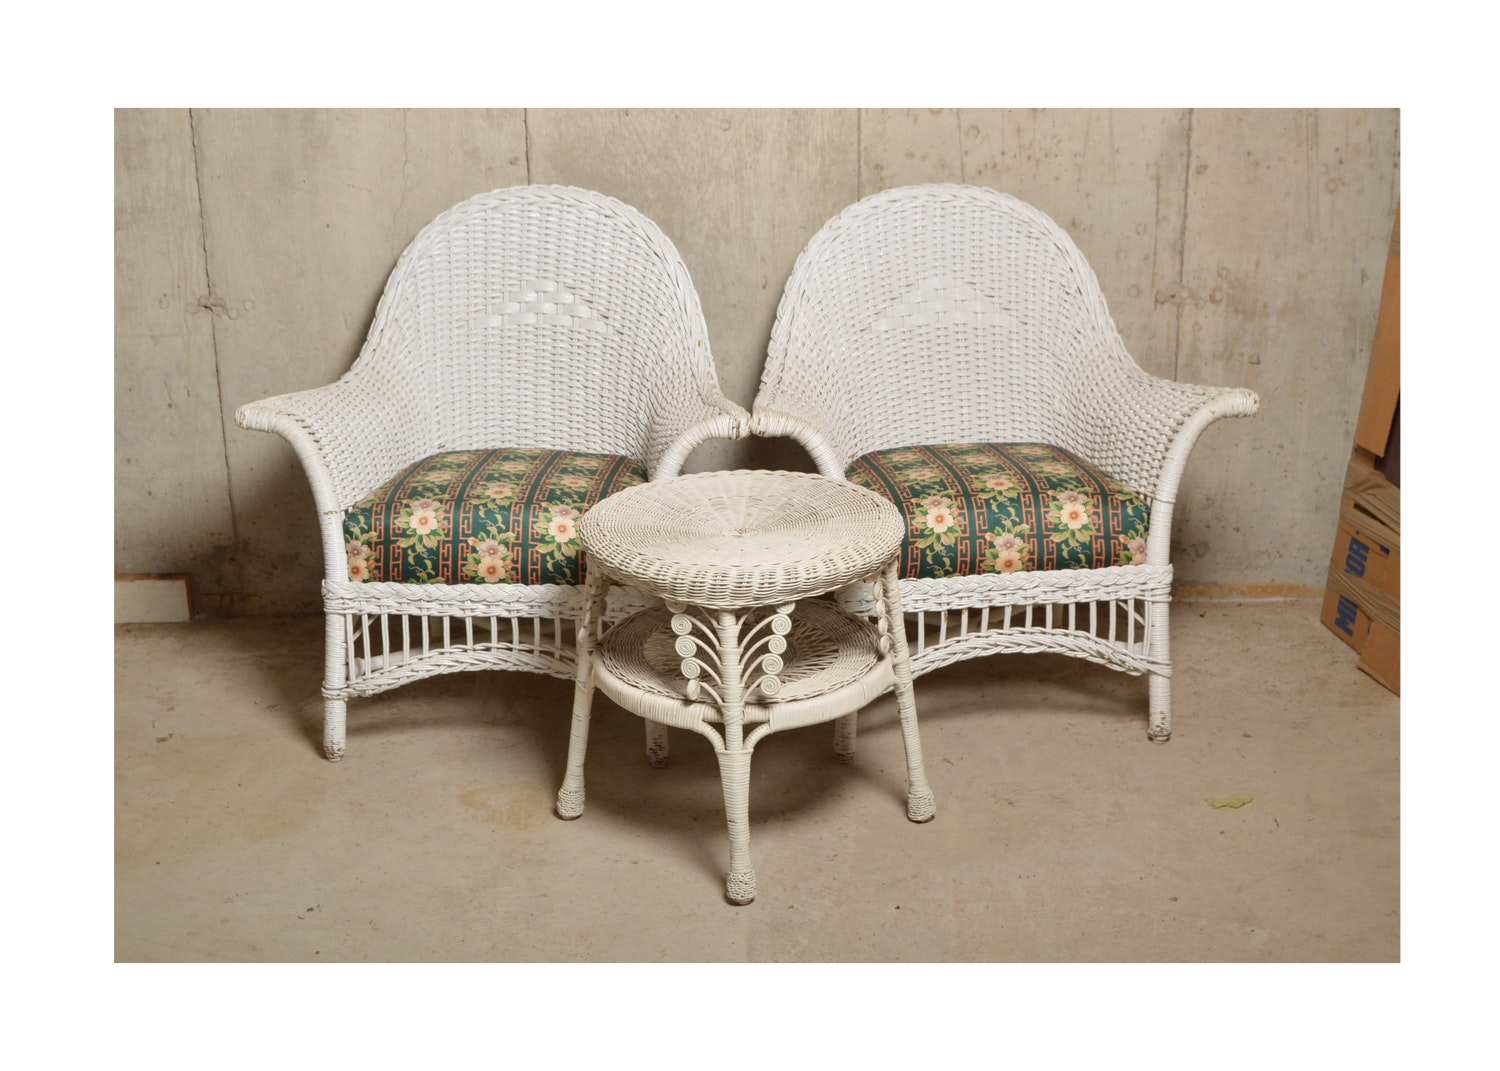 Pair Of Vintage Wicker Chairs With Table ...